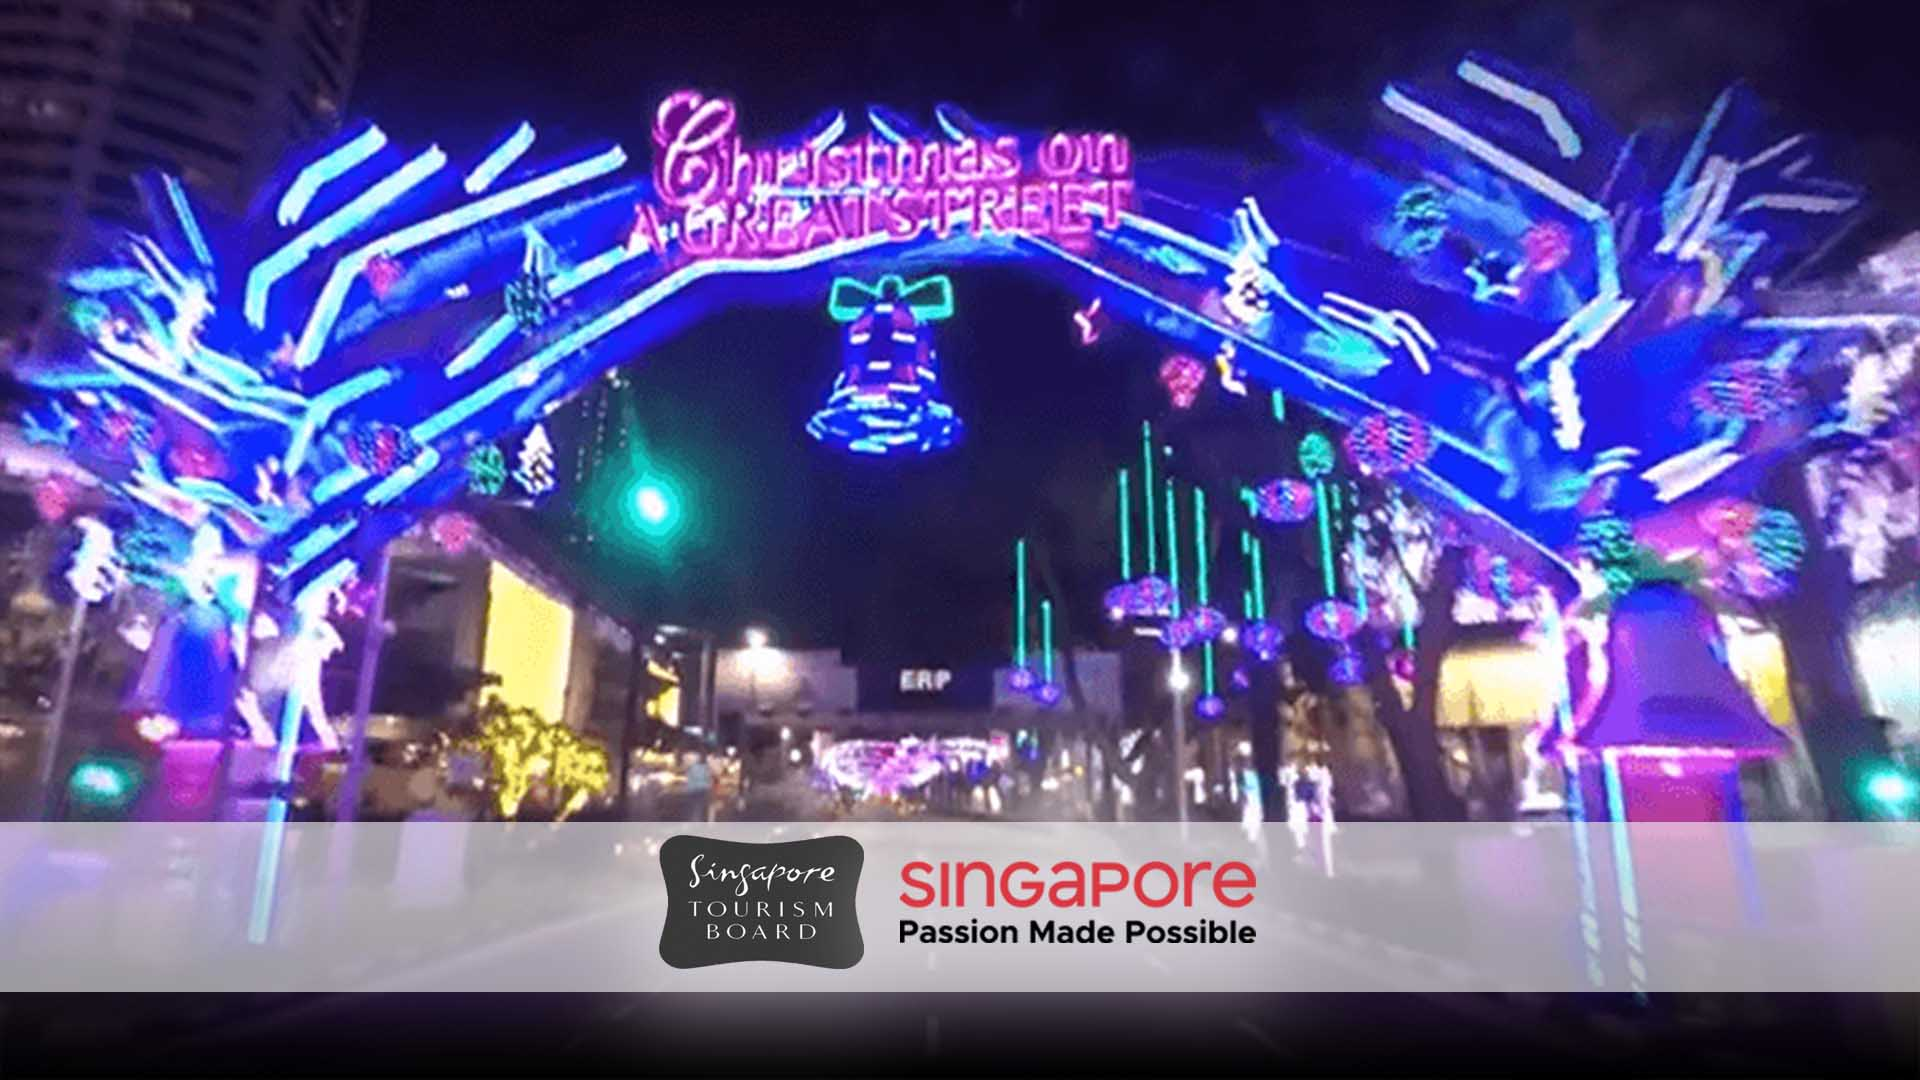 Singapore Tourism Board VR